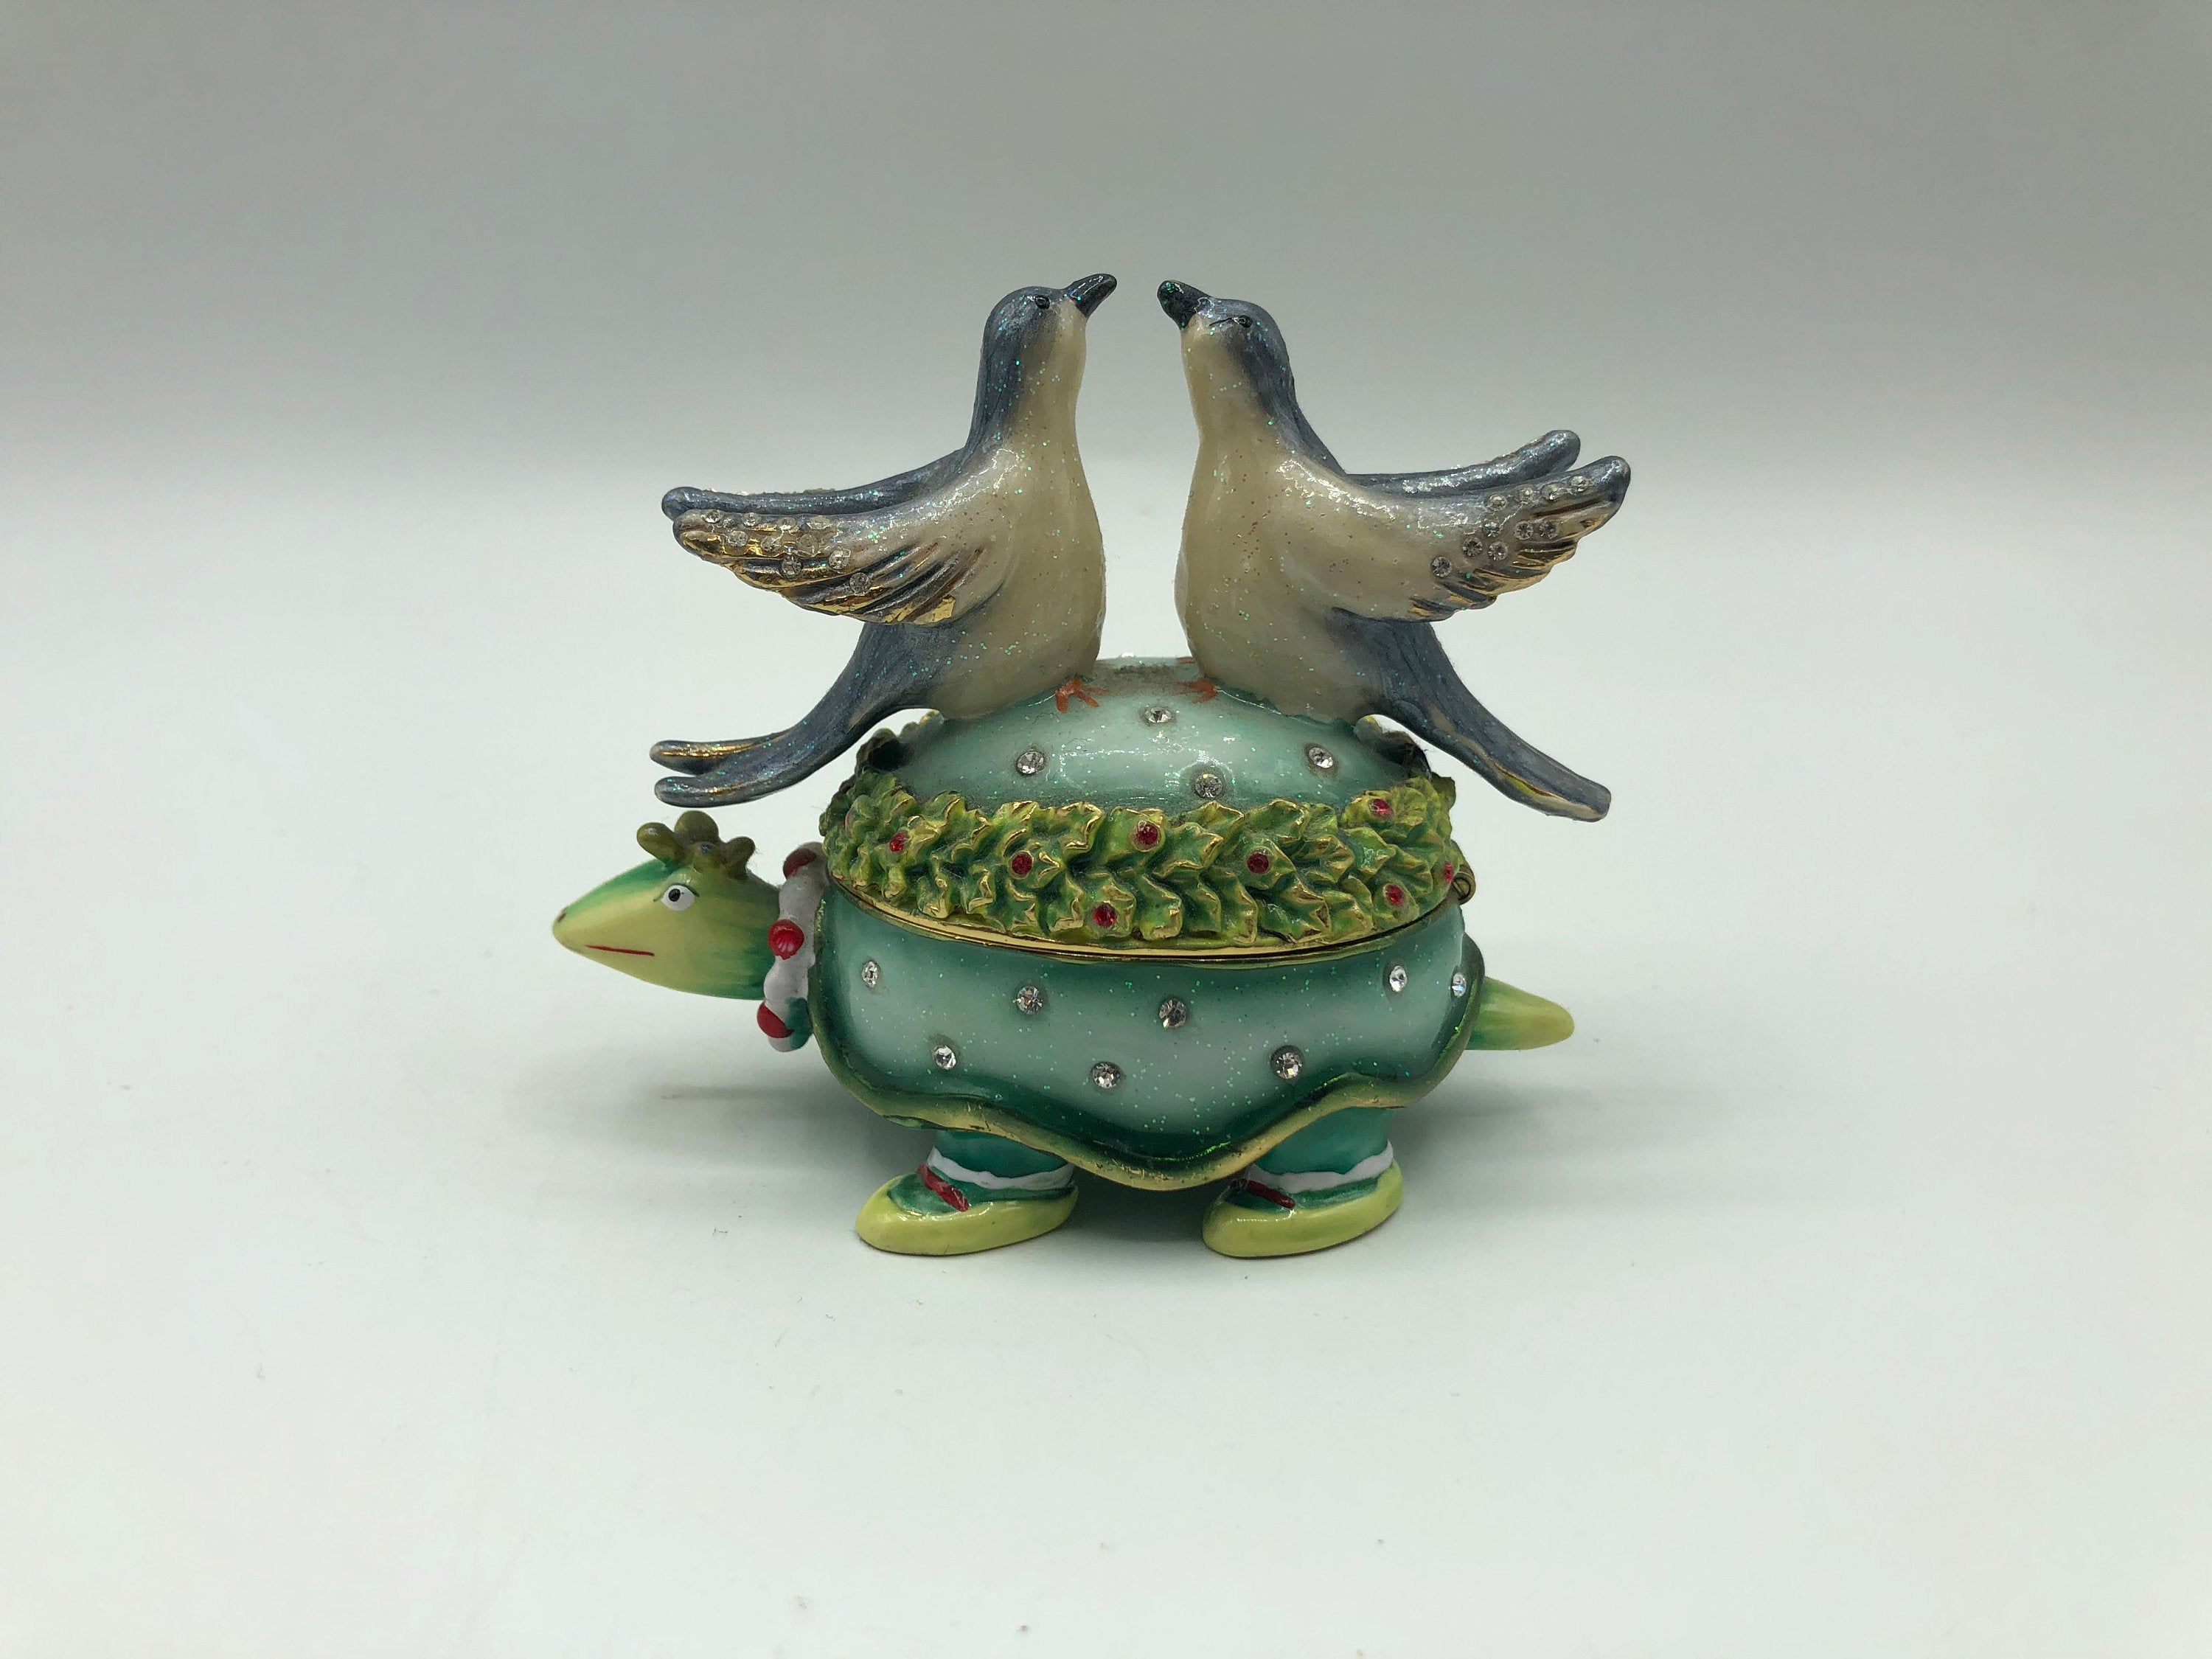 Two Turtle Doves Enamel Jewel Trinket Box Hinged Magnetic Etsy In 2020 Christmas Trinkets Trinket Boxes Trinket